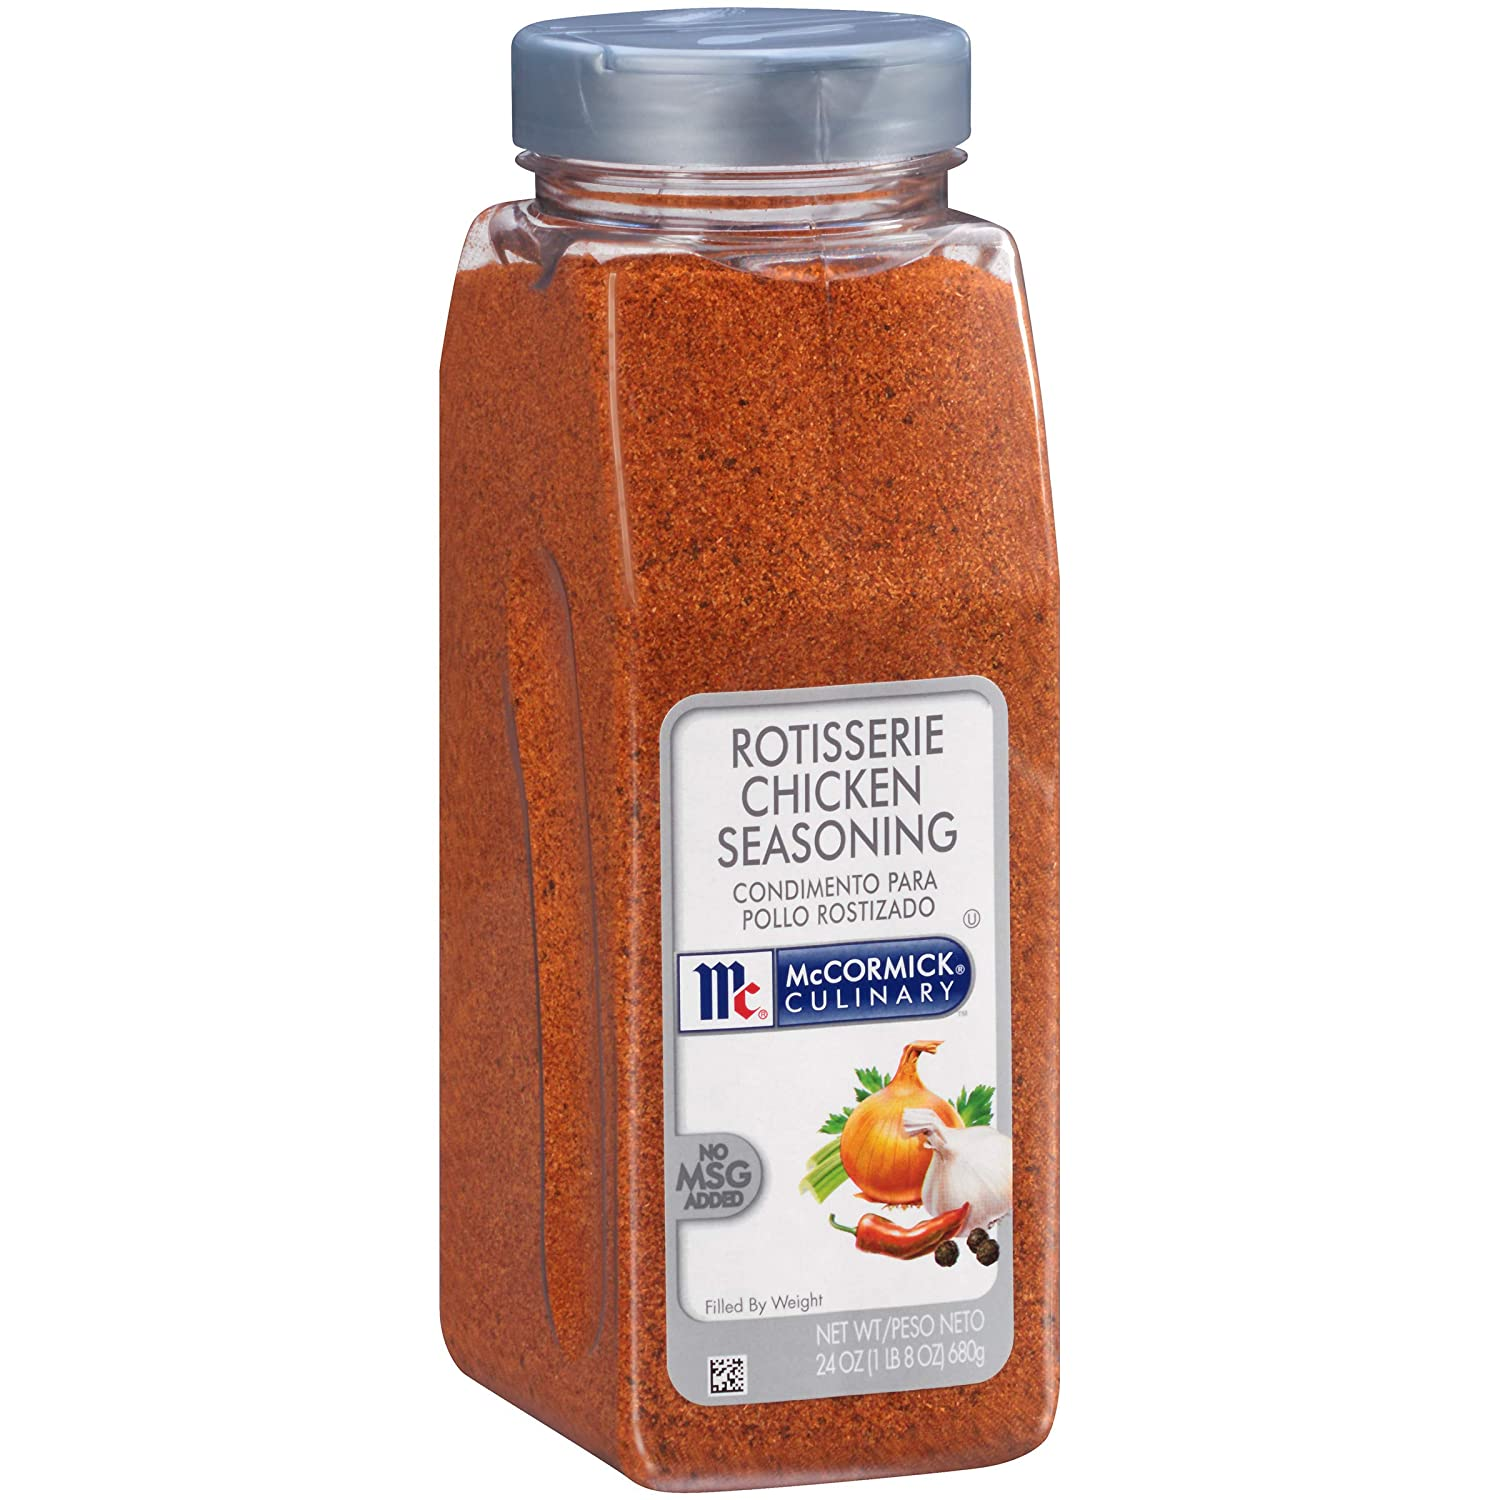 McCormick Culinary Rotisserie Chicken Seasoning, 24 oz